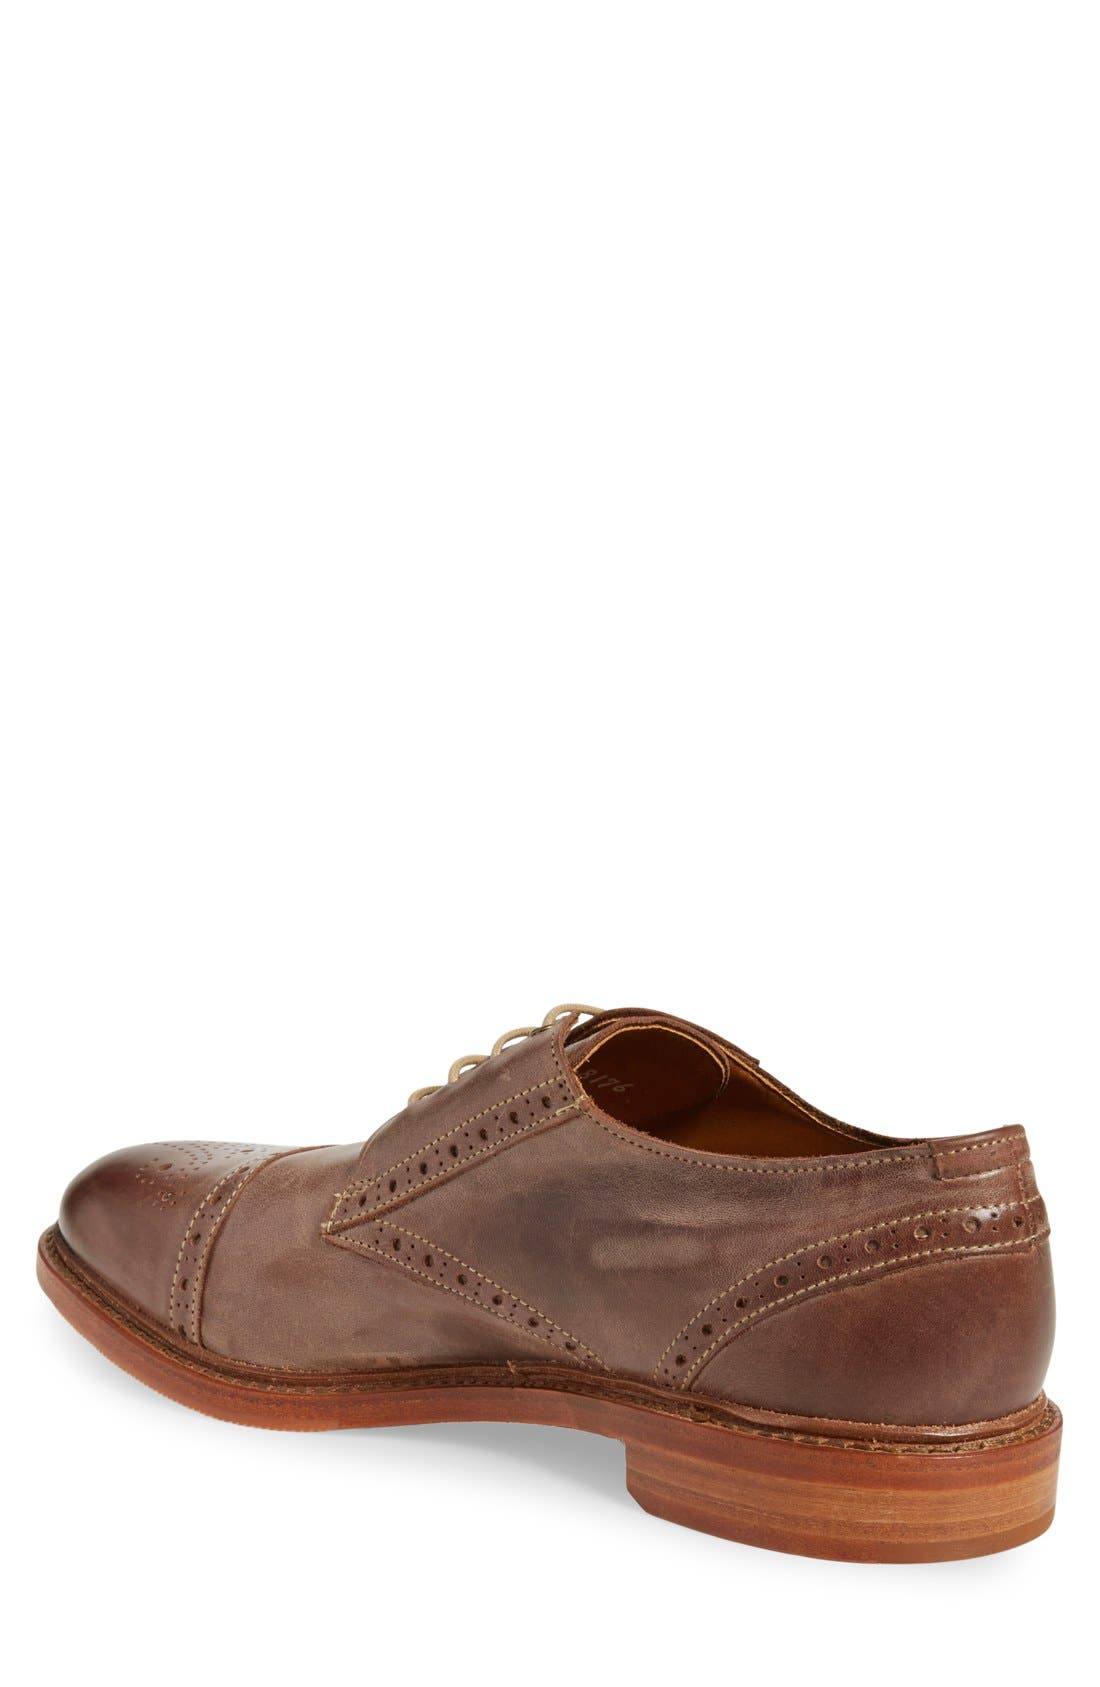 'Bainbridge' Cap Toe Derby,                             Alternate thumbnail 2, color,                             BROWN LEATHER